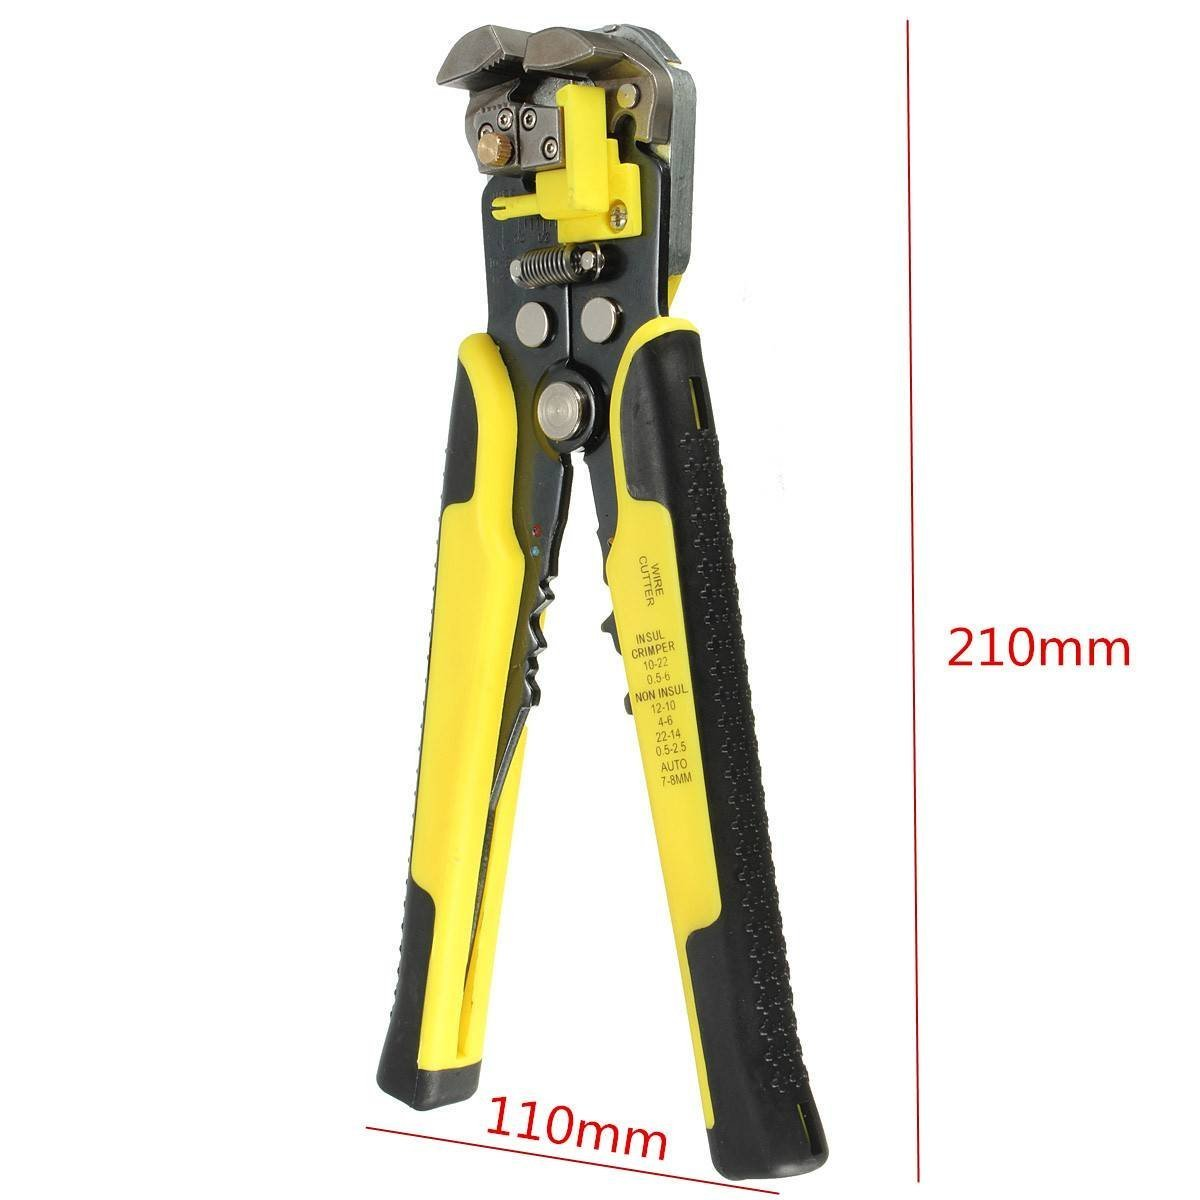 Wire Stripping Tool,Self-Adjusting Professional Multifunctional cable stripper/Crimping Stripping Cutting Pliers /Wire Stripper Plier Tool for Industry 10-24 AWG Stranded Wire Cutting by Drillpro by DRILLPRO (Image #2)